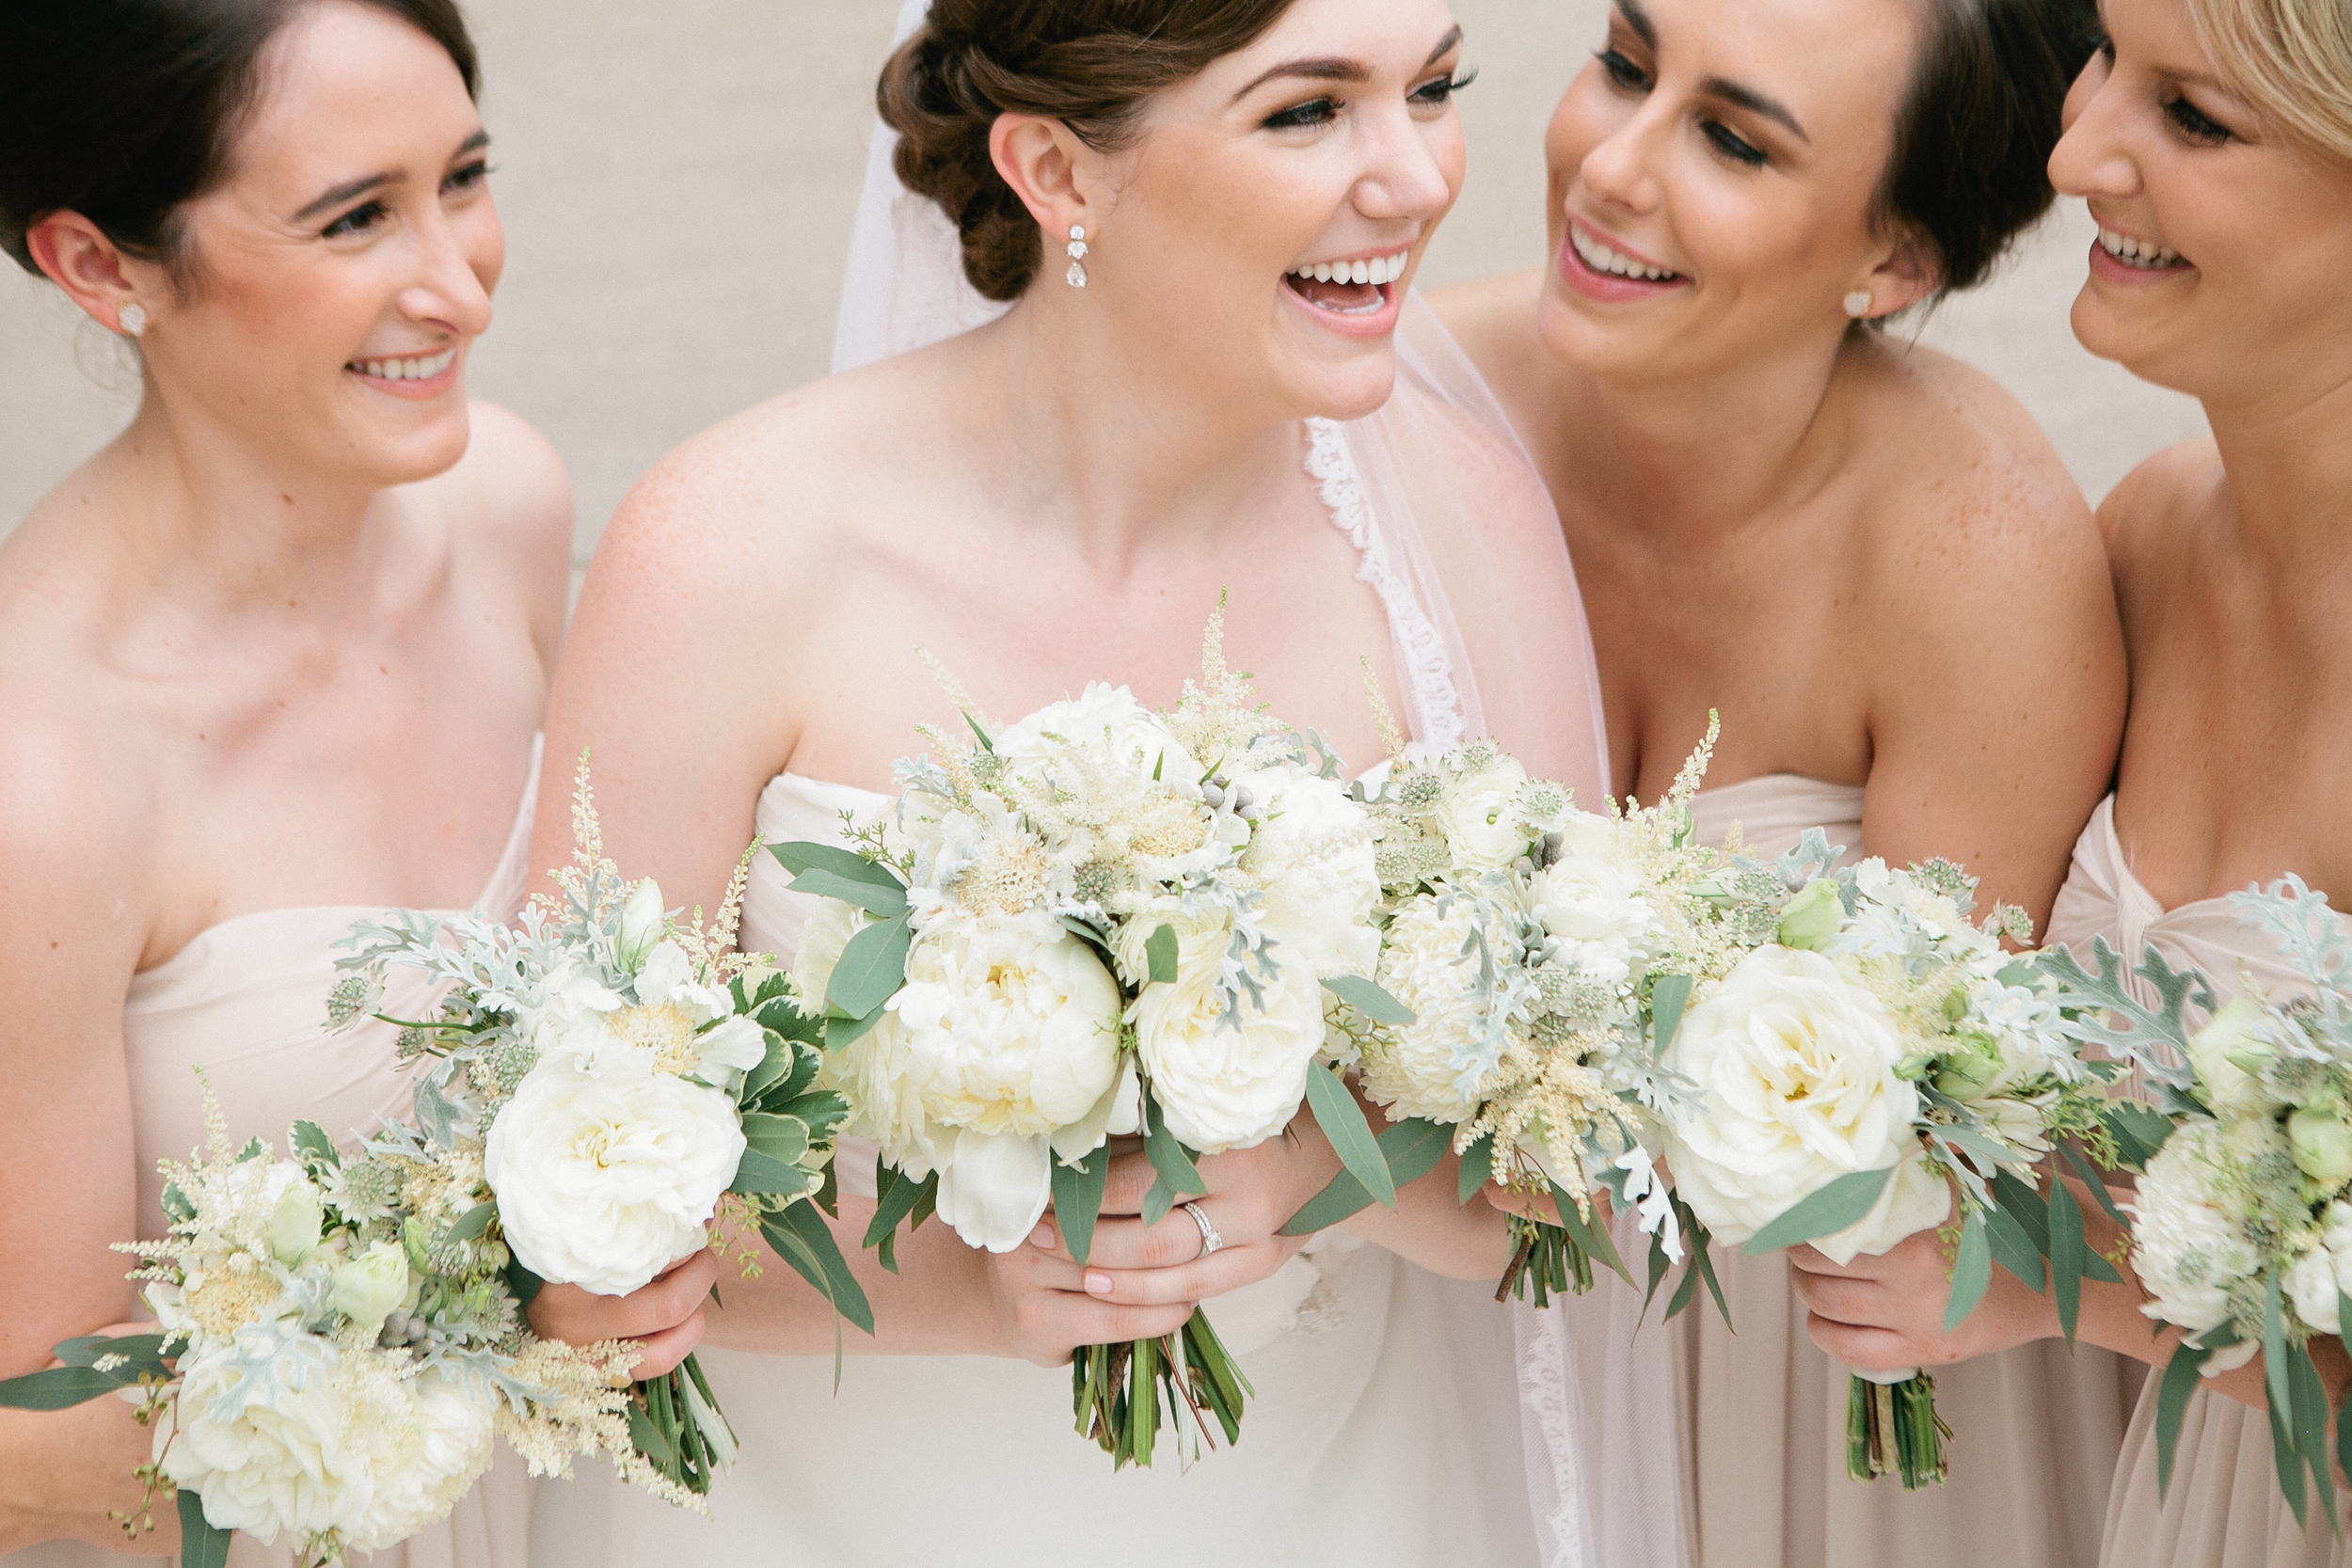 Cream and ivory bouquets